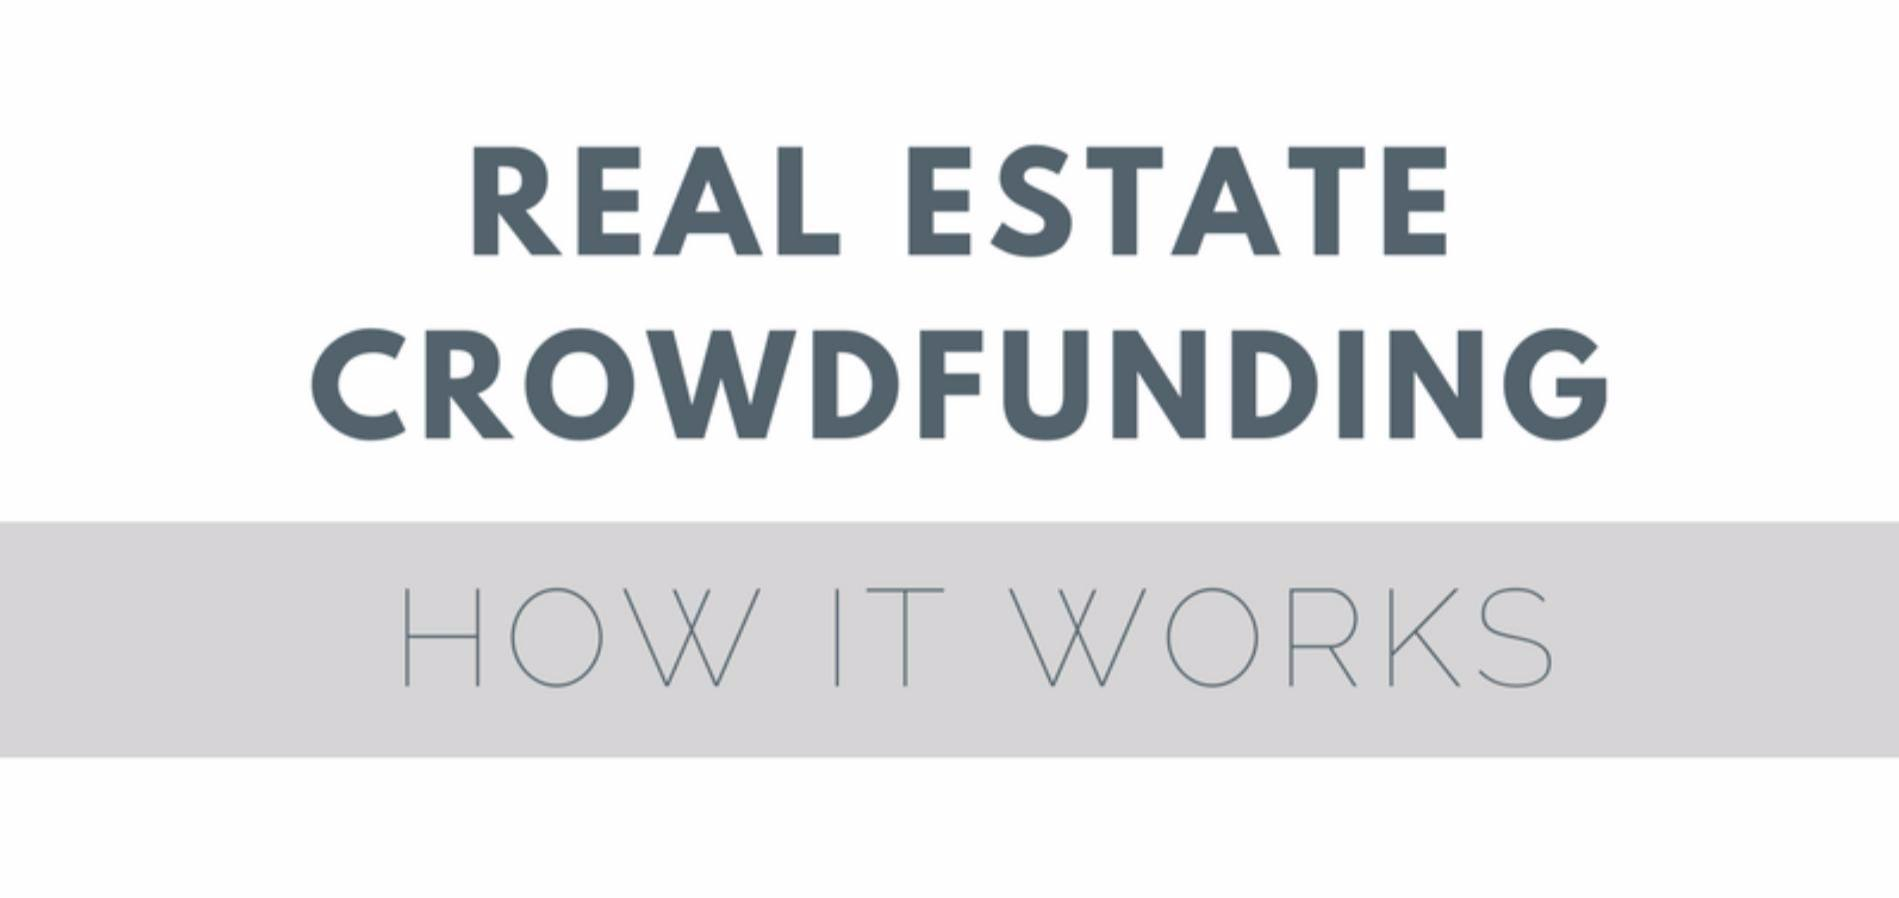 How does Real Estate Crowdfunding work